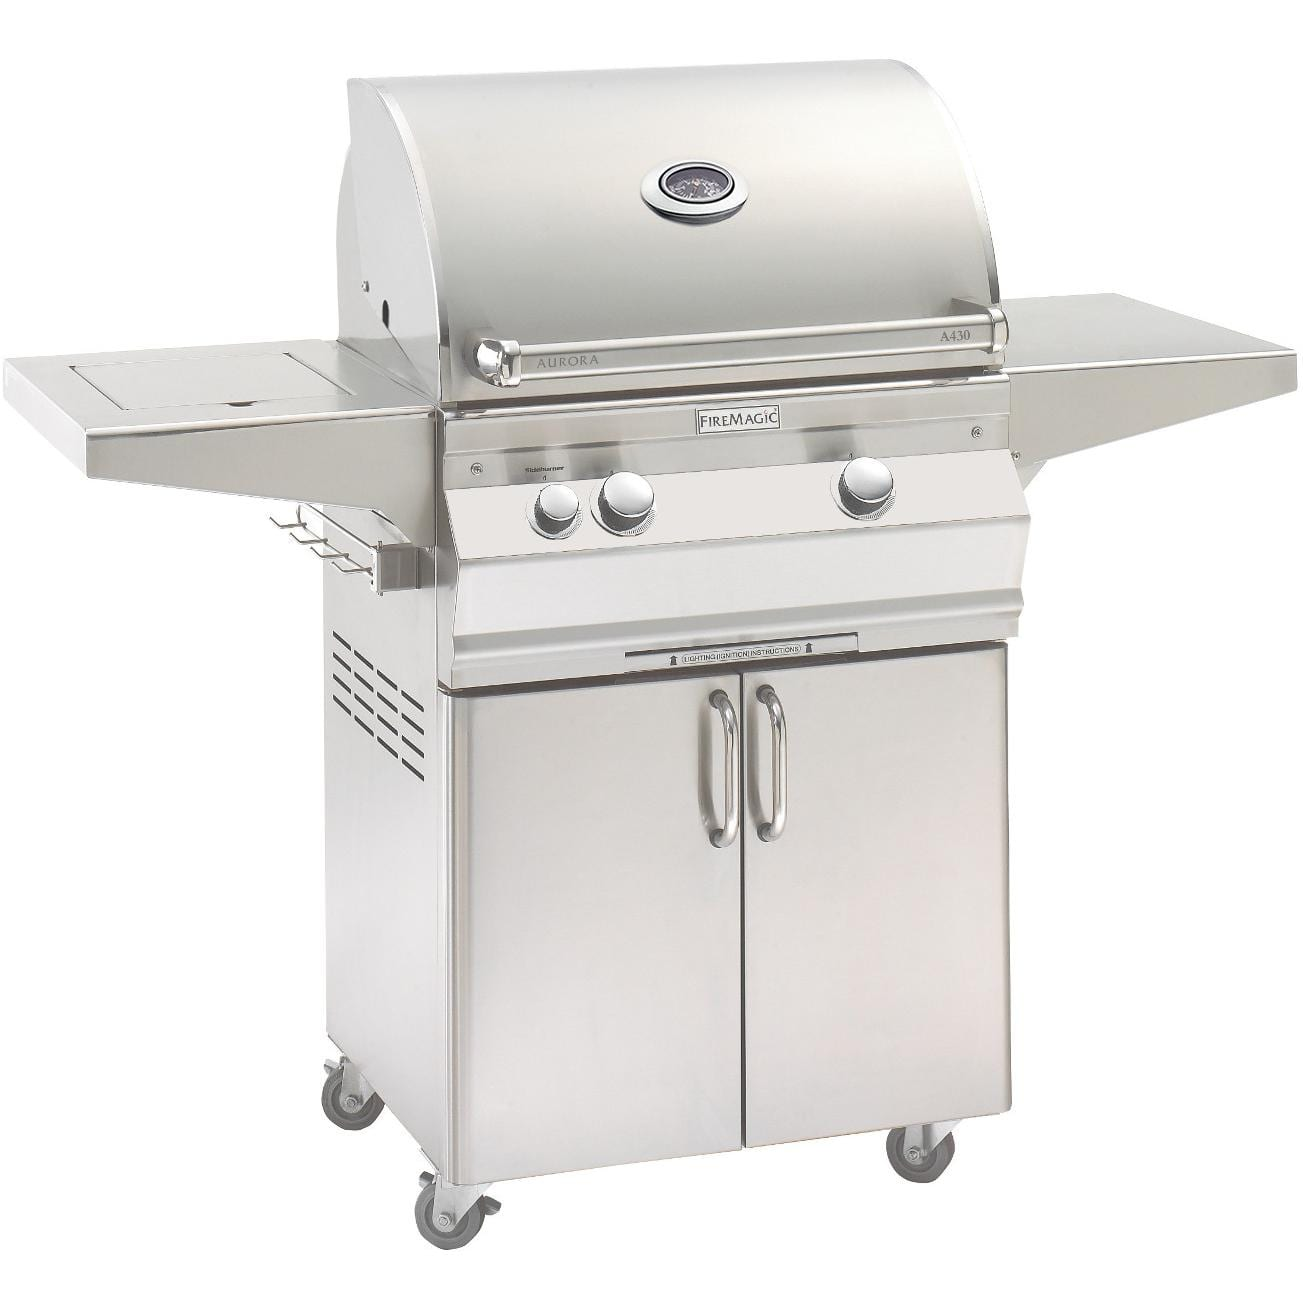 Fire Magic Aurora A430s Freestanding Natural Gas Grill